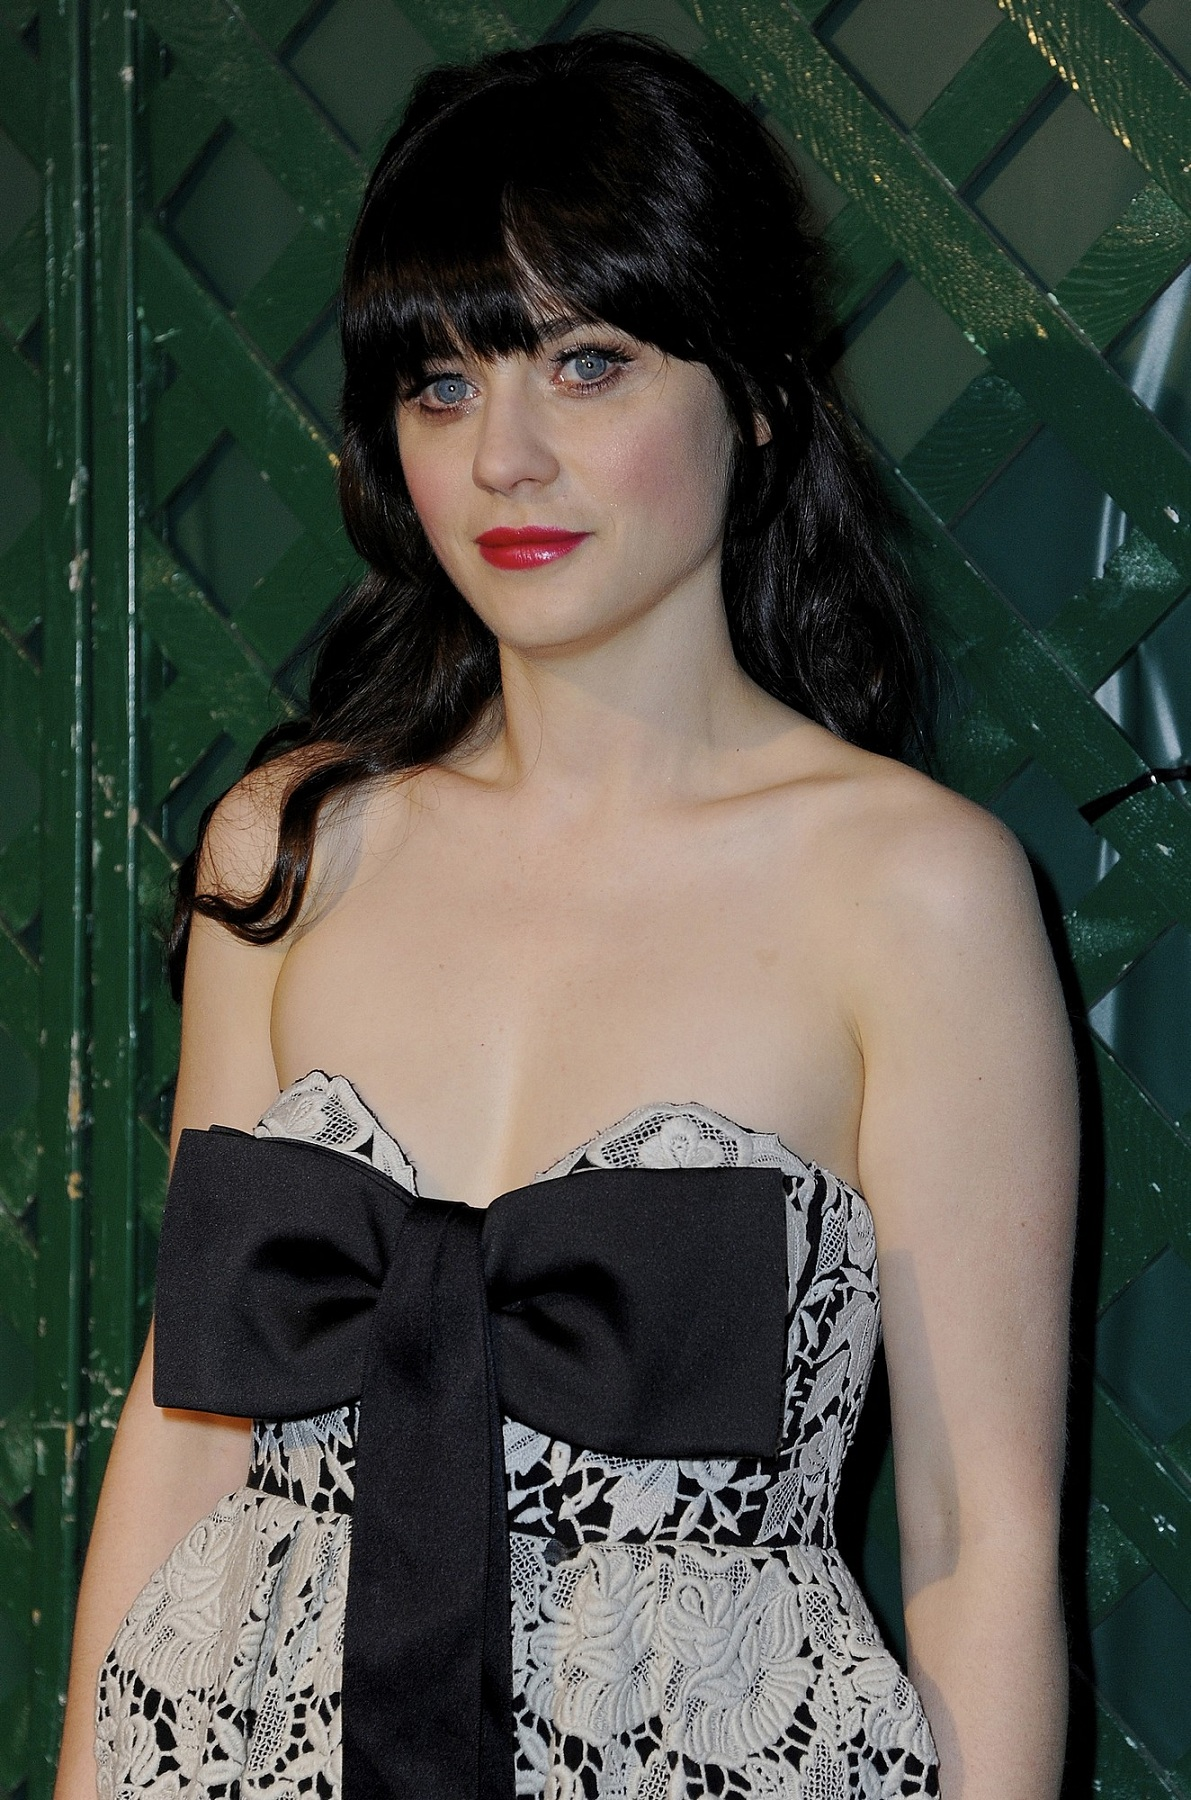 Zooey Deschanel Sexy Bikini Pictures - Look Very Cool Without Bangs